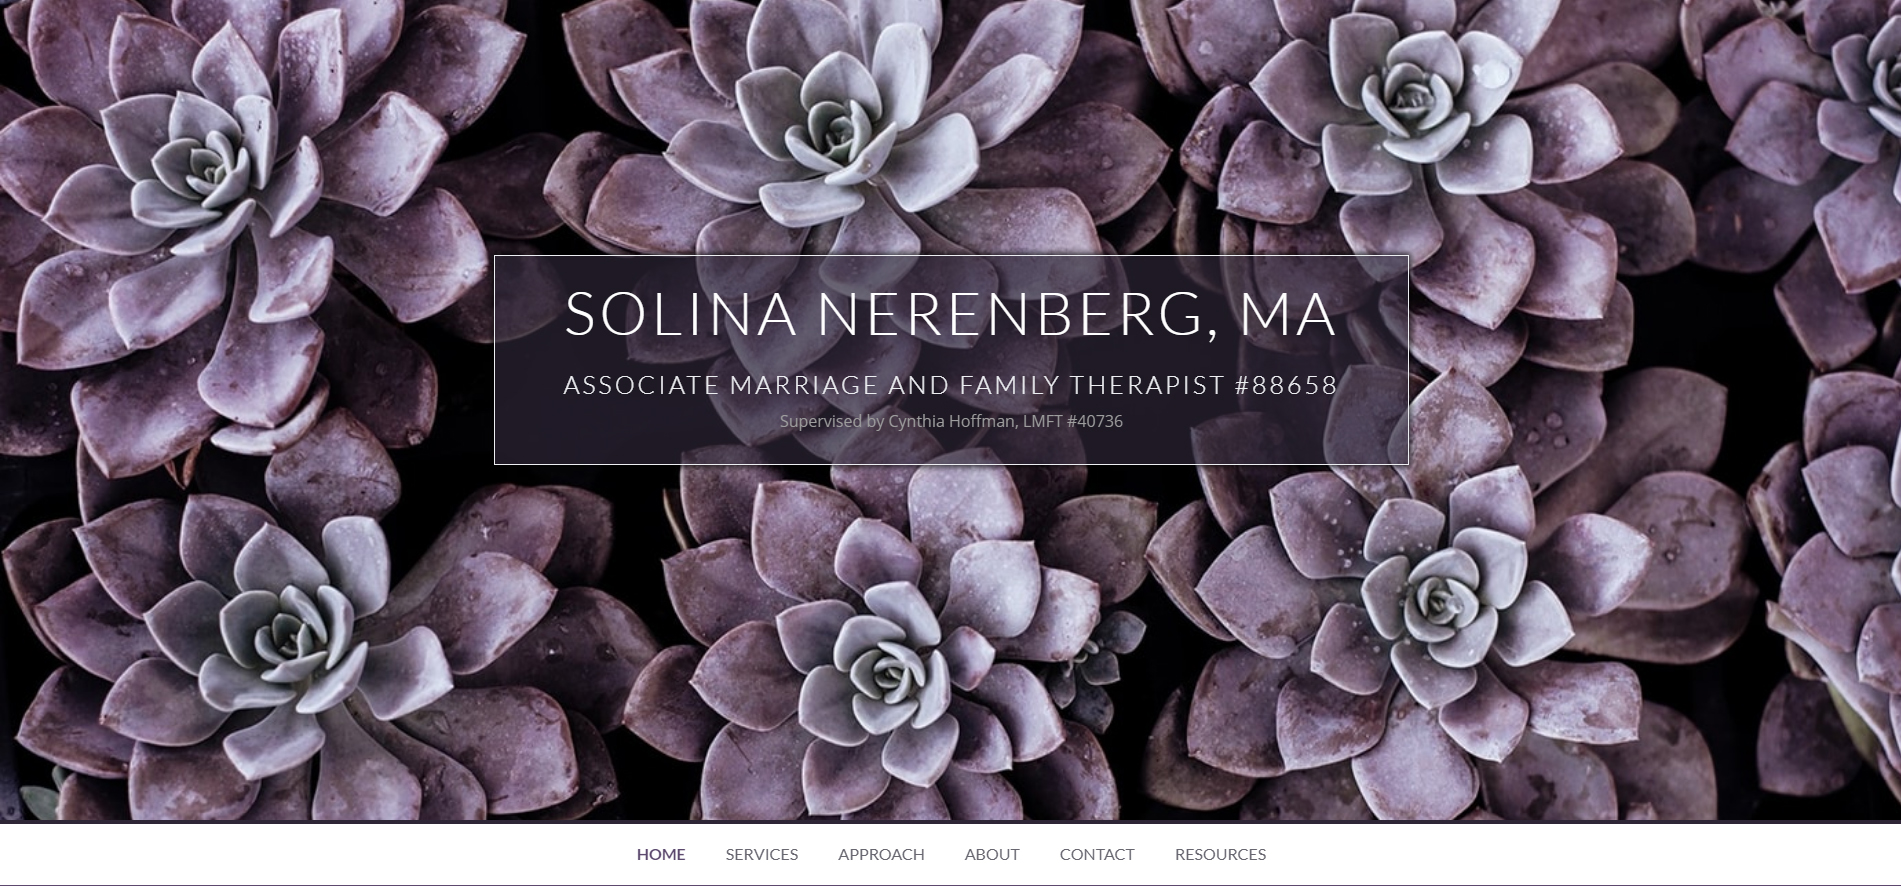 The professional therapy webpage of Solina Nerenberg designed by Alisha Rosen